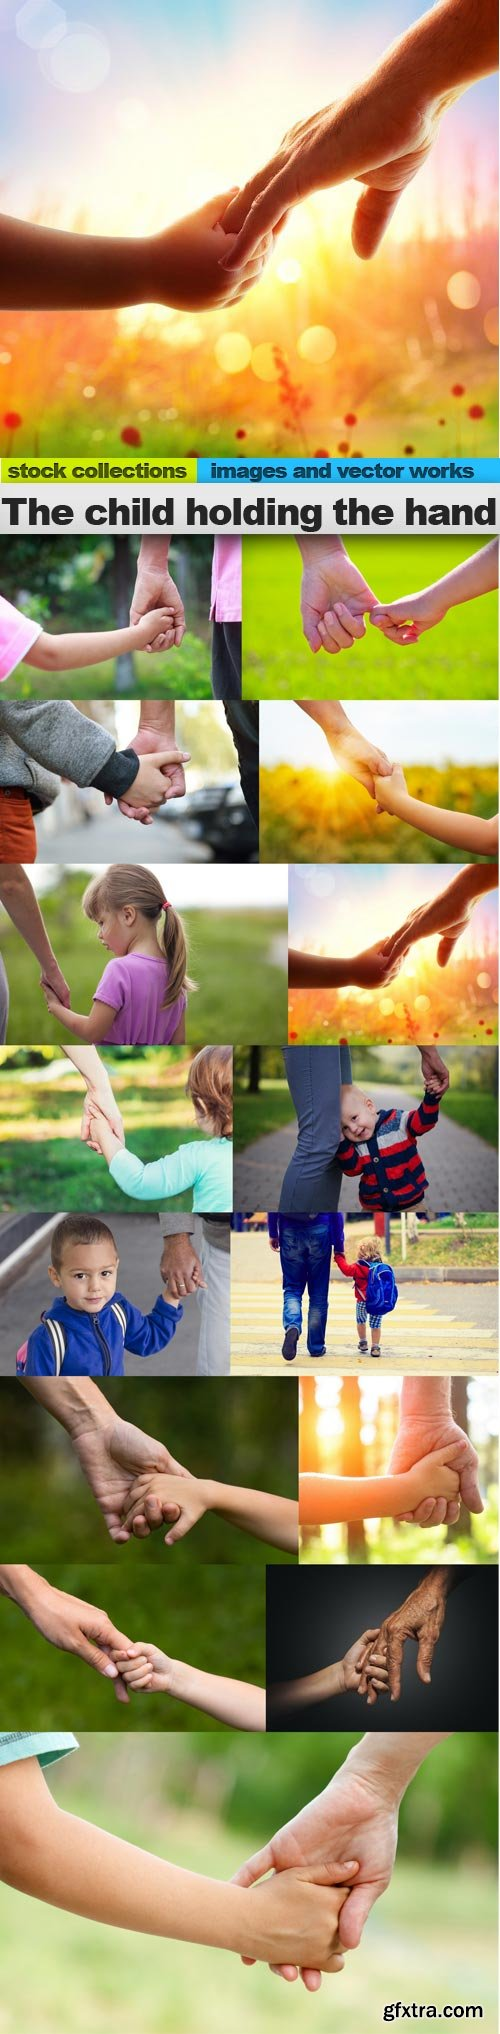 The child holding the hand, 15 x UHQ JPEG